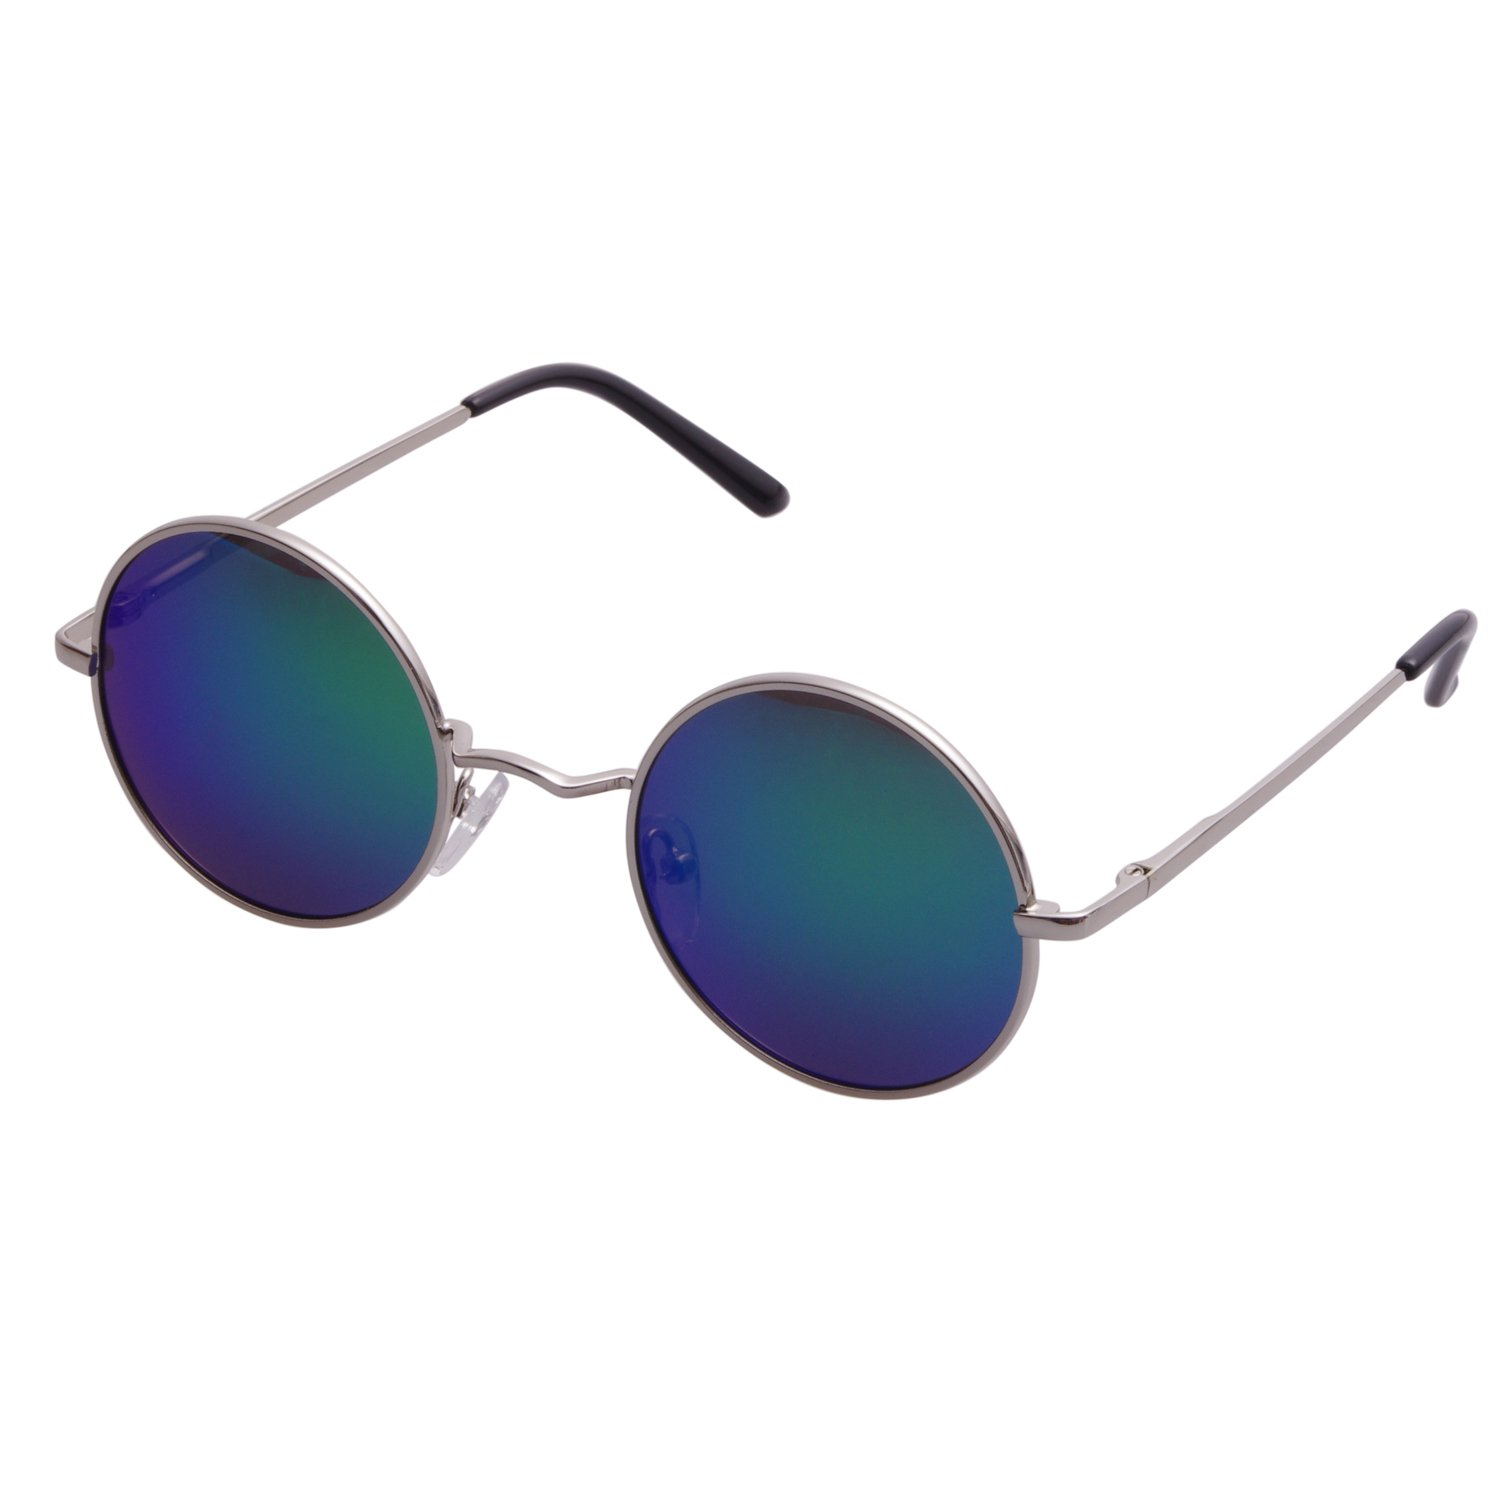 ddd3d0abb3 Amazon.com  Aoron Vintage Round Sunglasses with Polarized Mirrored Lenses  for Retro Women and Men (Green-blue Mirrored